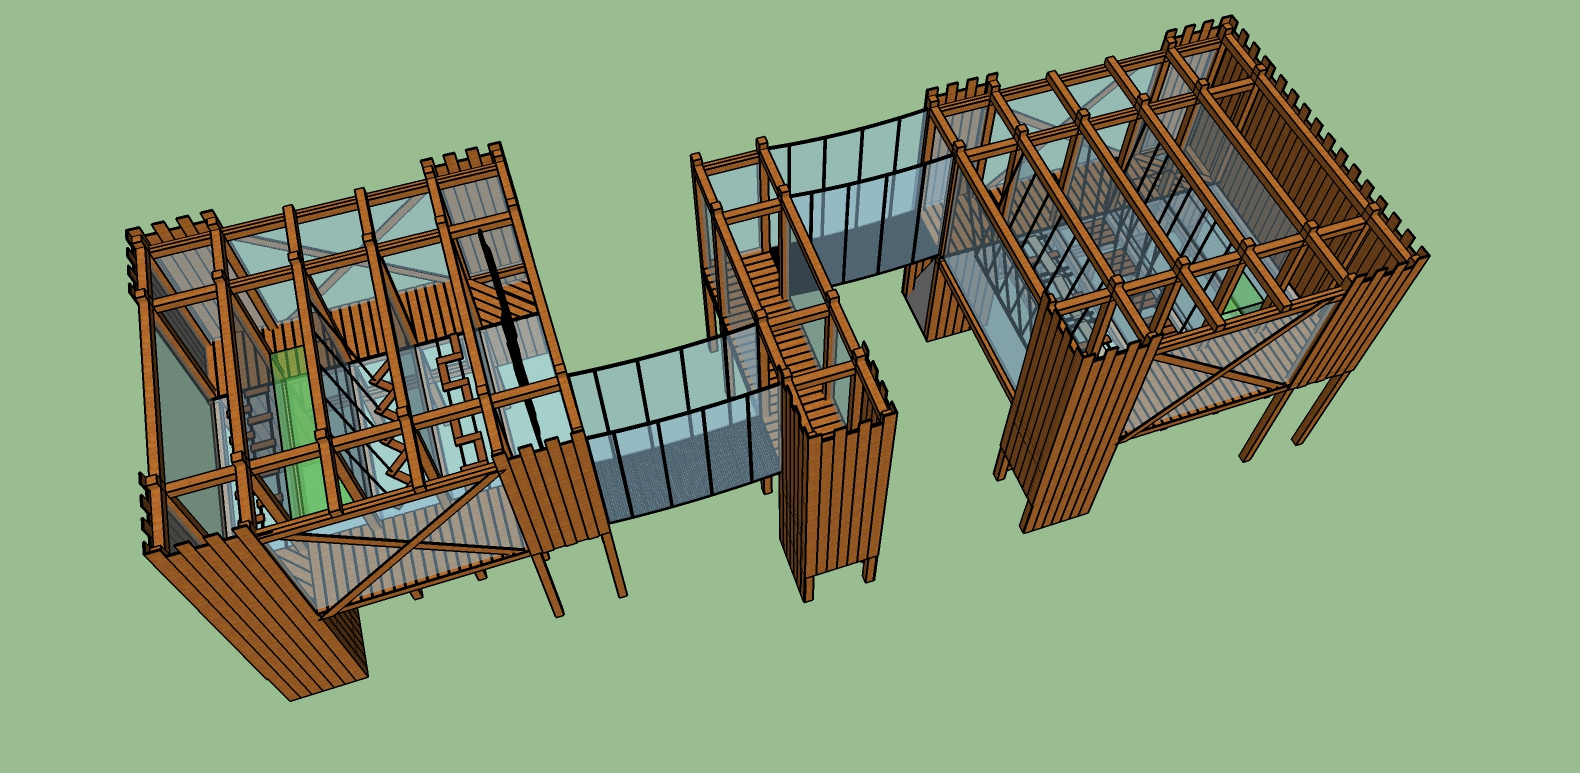 Acrocabane® - 2 modules 6x6